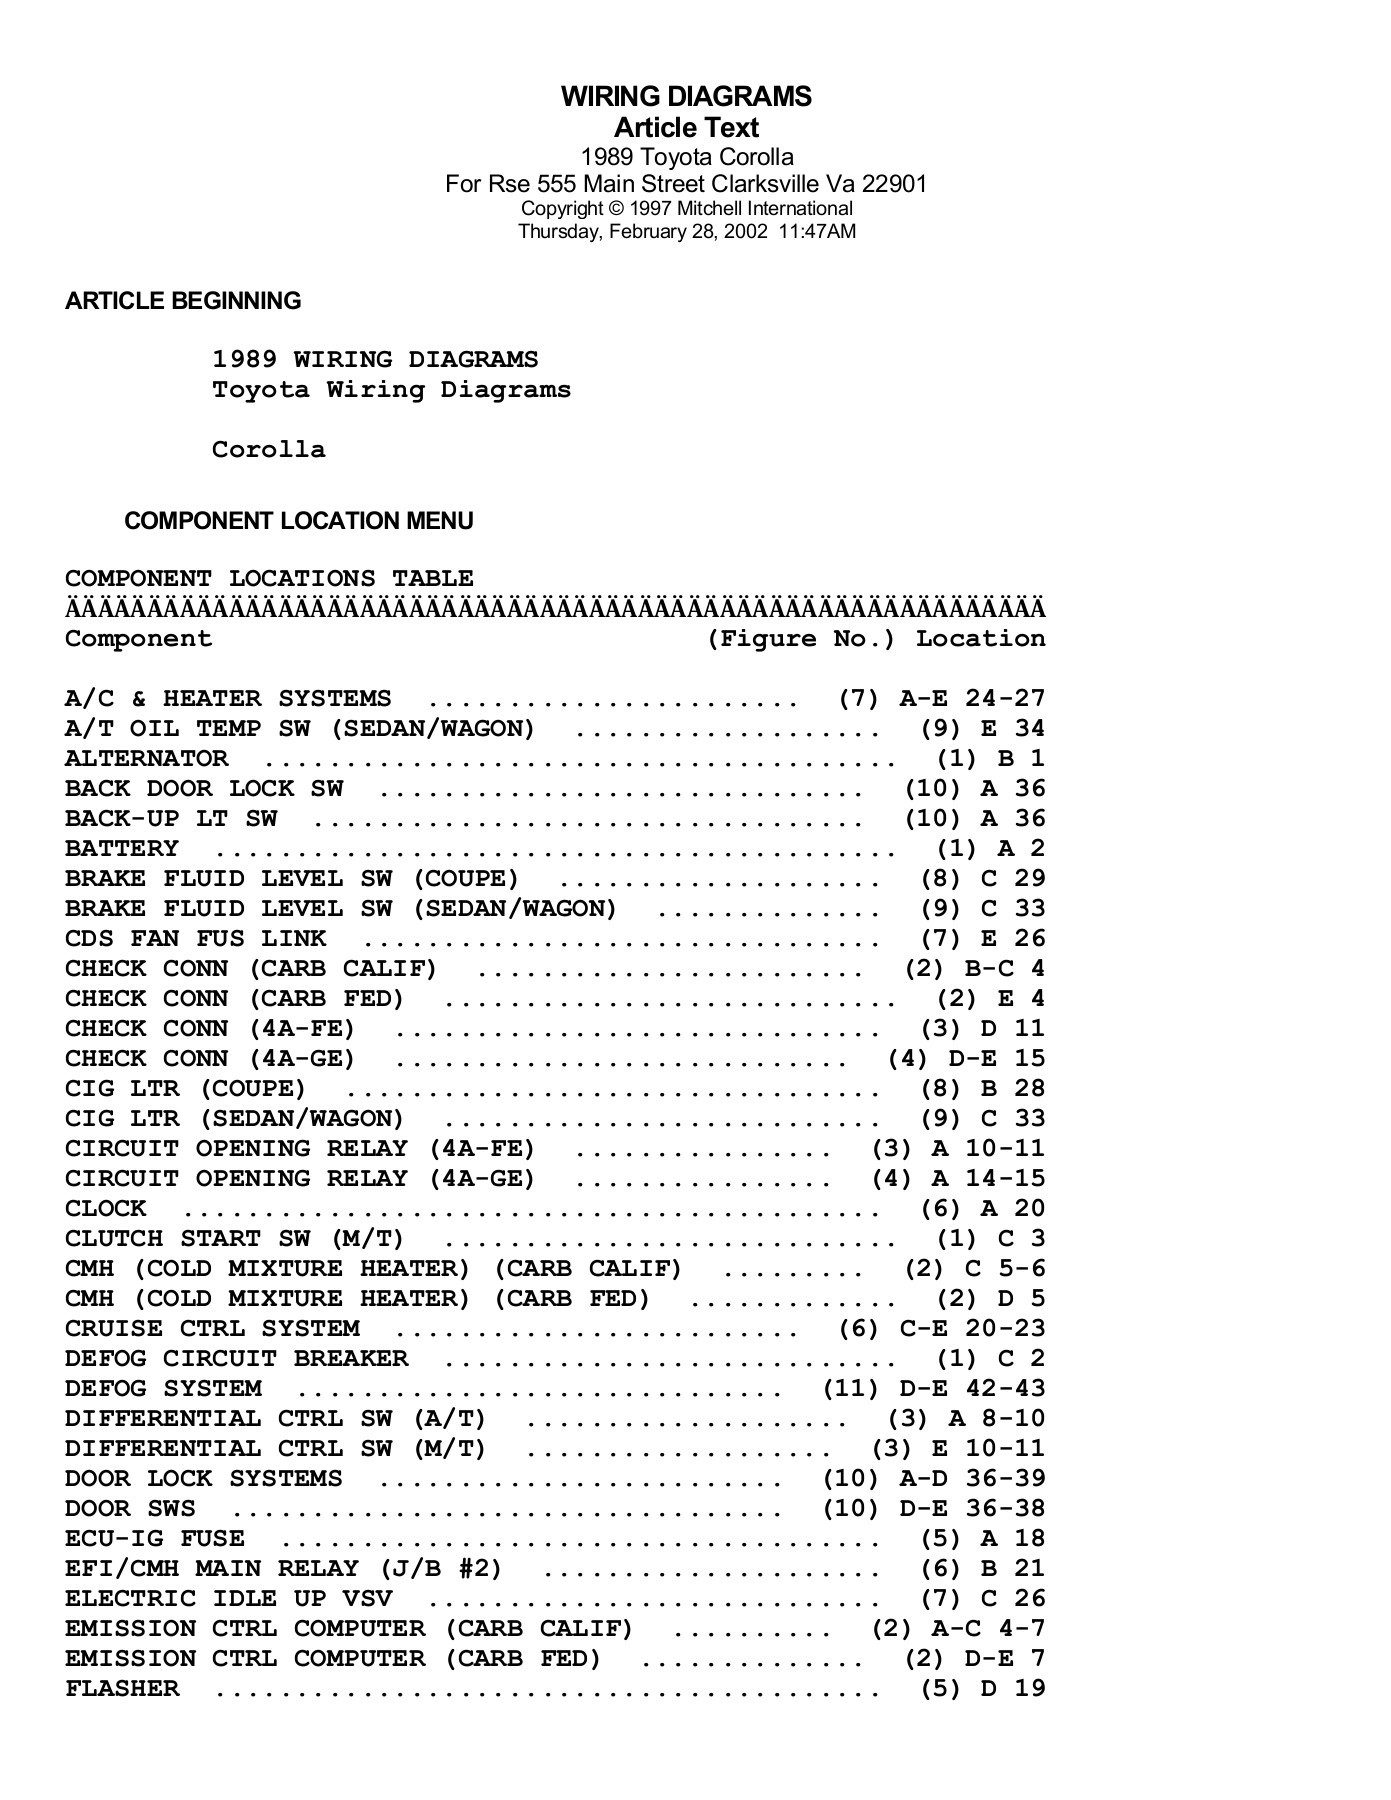 hight resolution of wiring diagrams article text 1989 toyota corolla for rse pages 1 14 text version fliphtml5